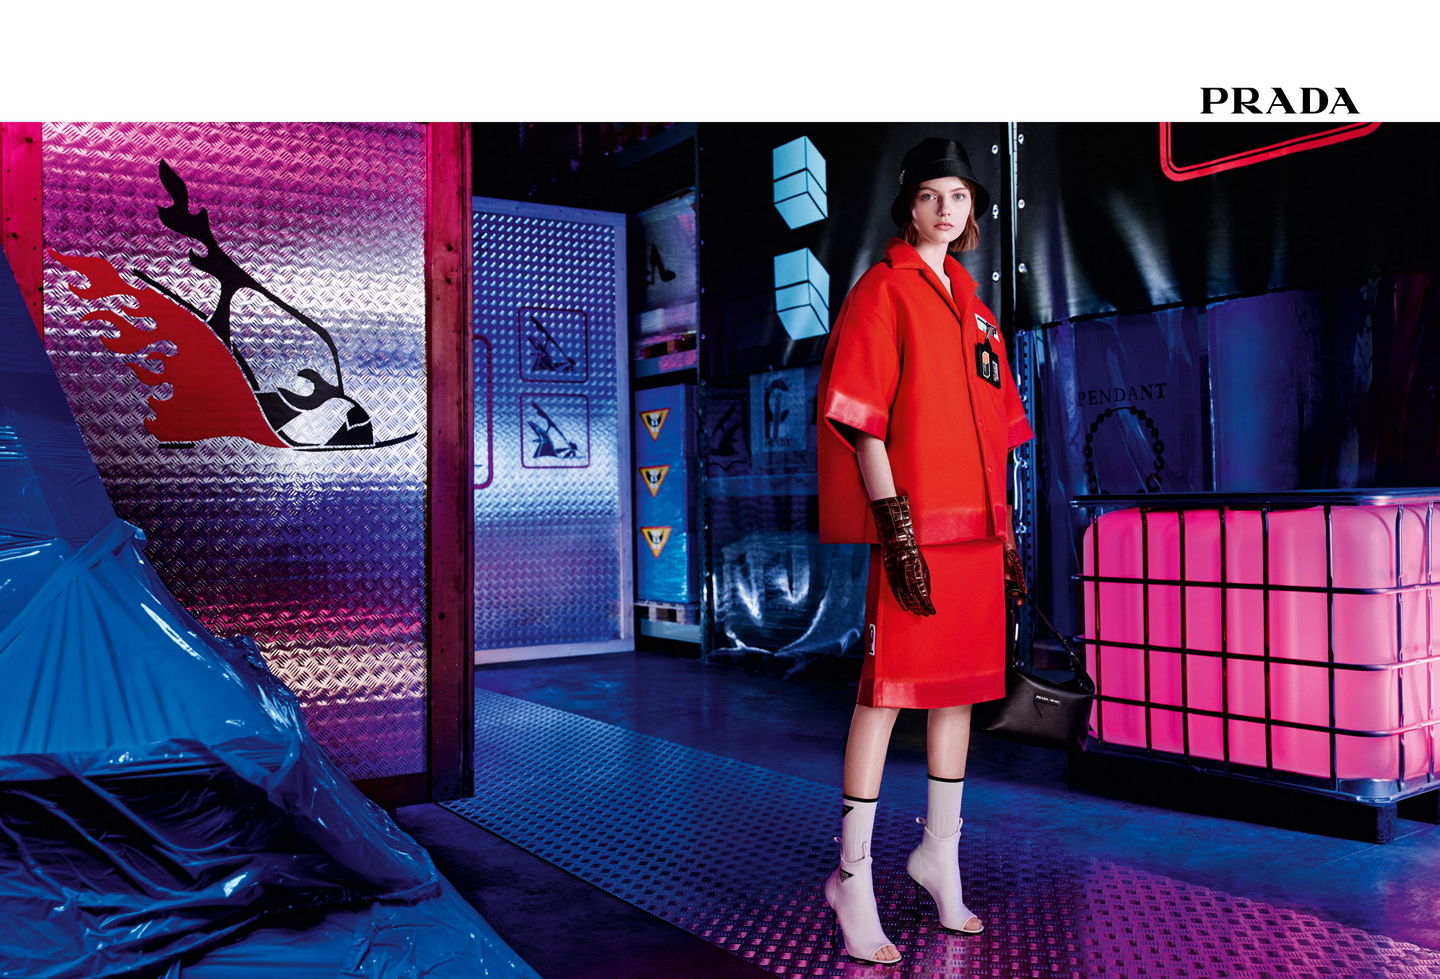 Prada Pre_Fall 2018 Advertising Campaign